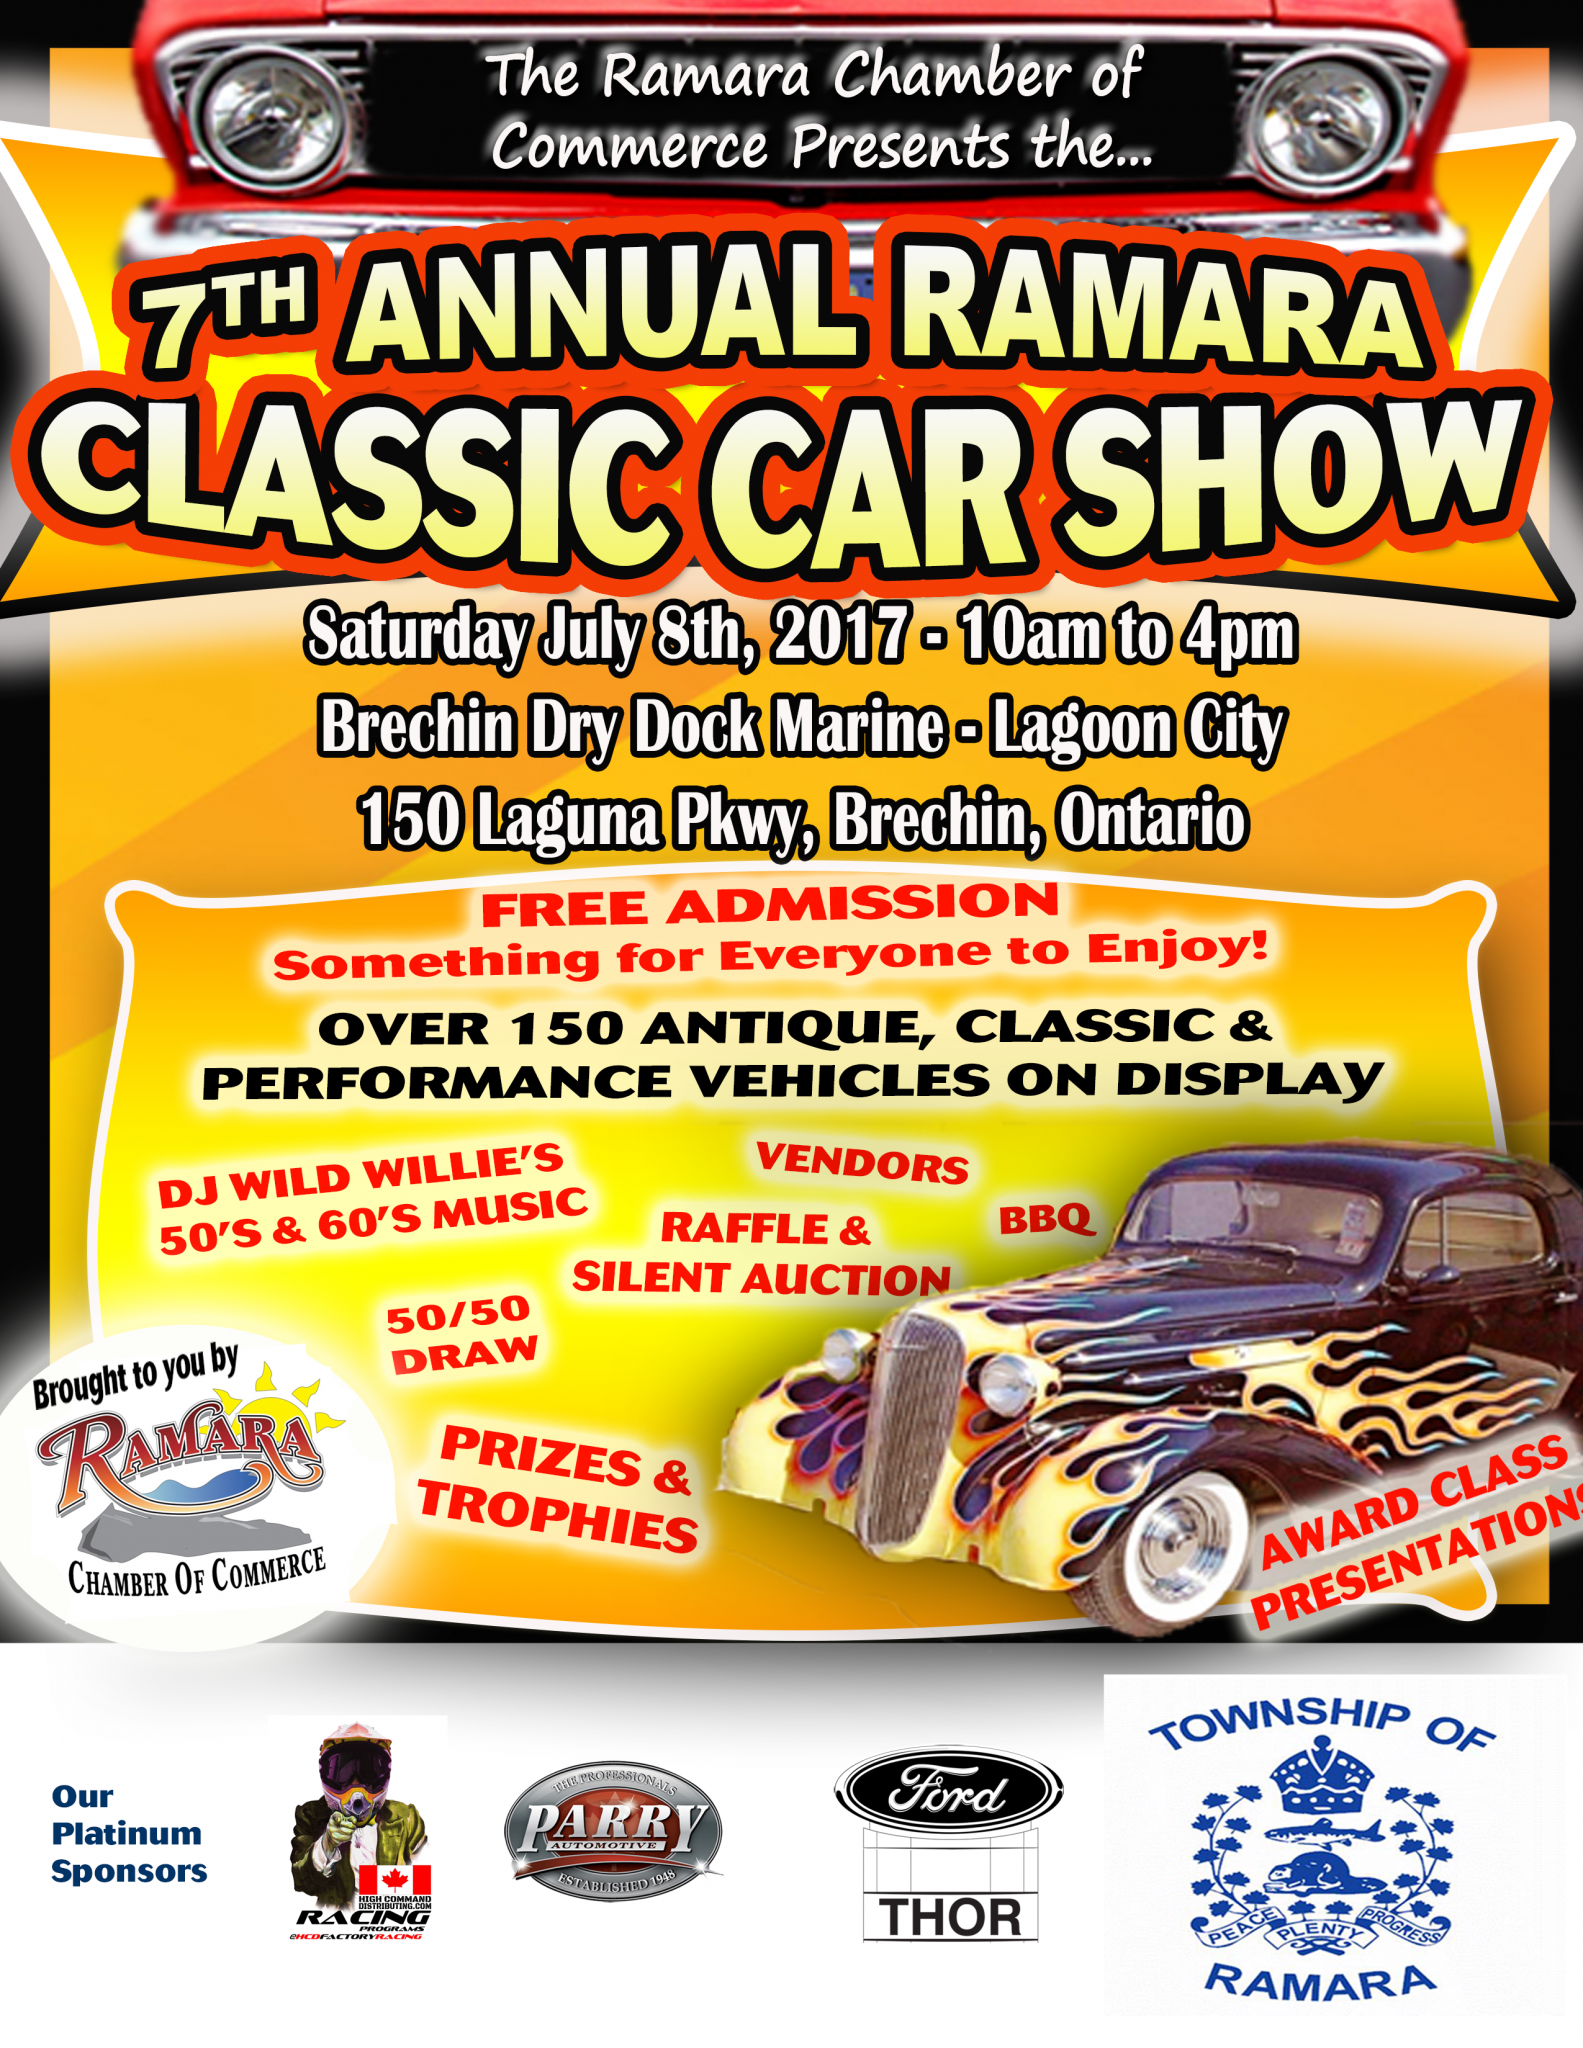 June7 2017 7thAnnualClassicCarShowPoster - 7th Annual Ramara Classic Car Show - Ramara Chamber of Commerce